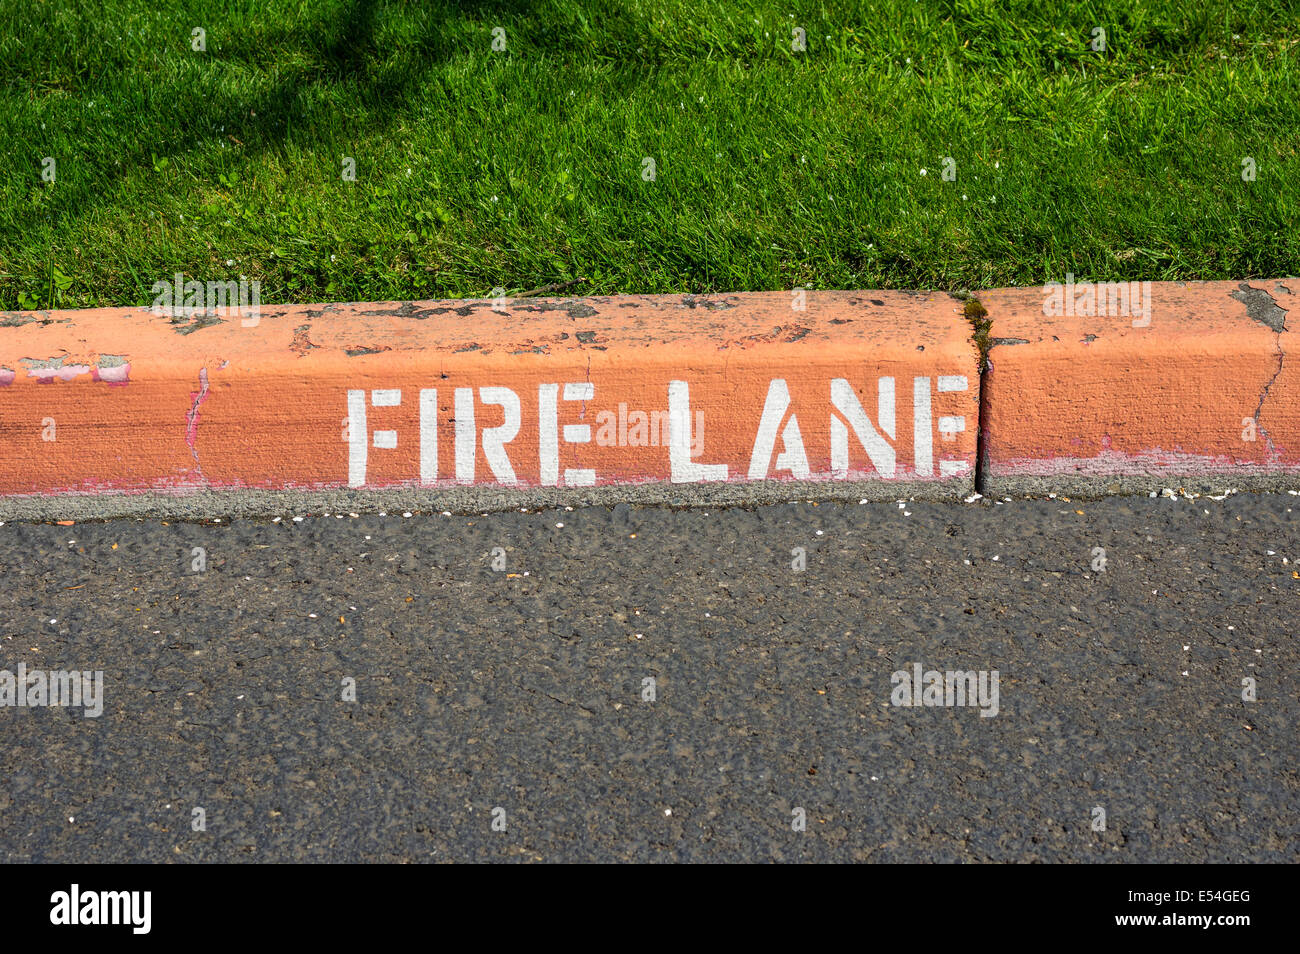 A red painted curb with a fire lane warning sign - Stock Image